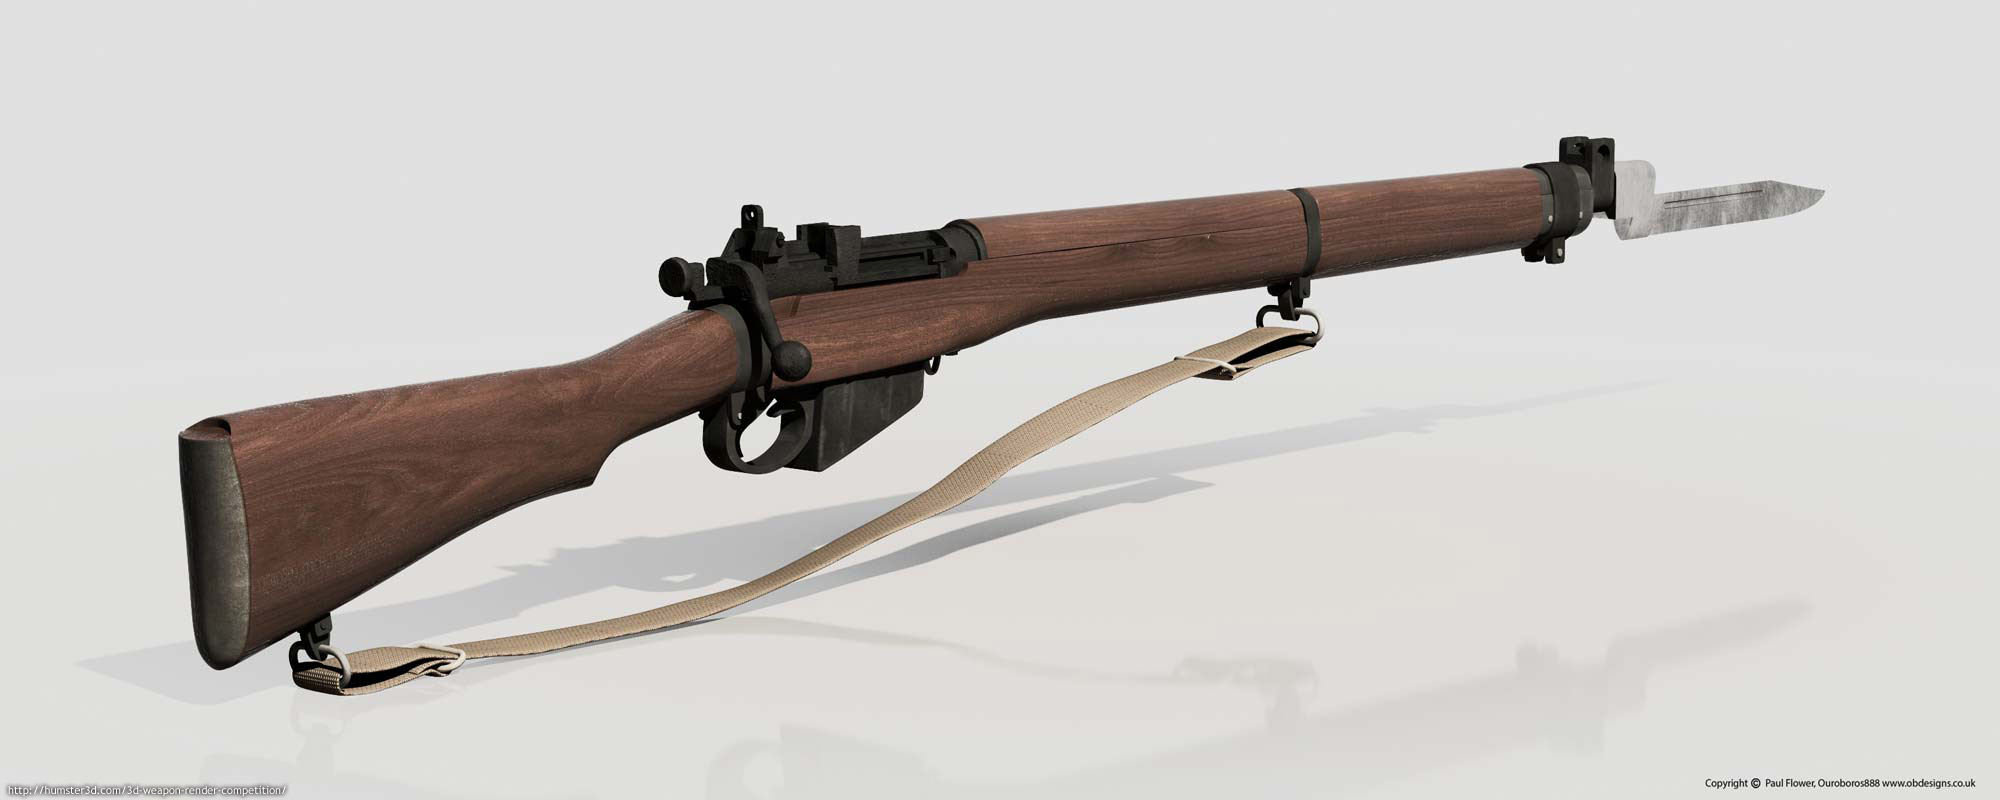 Military Discount Used Cars Lee Enfield Rifle - Paul Flower - 3D weapon competition - Humster3D